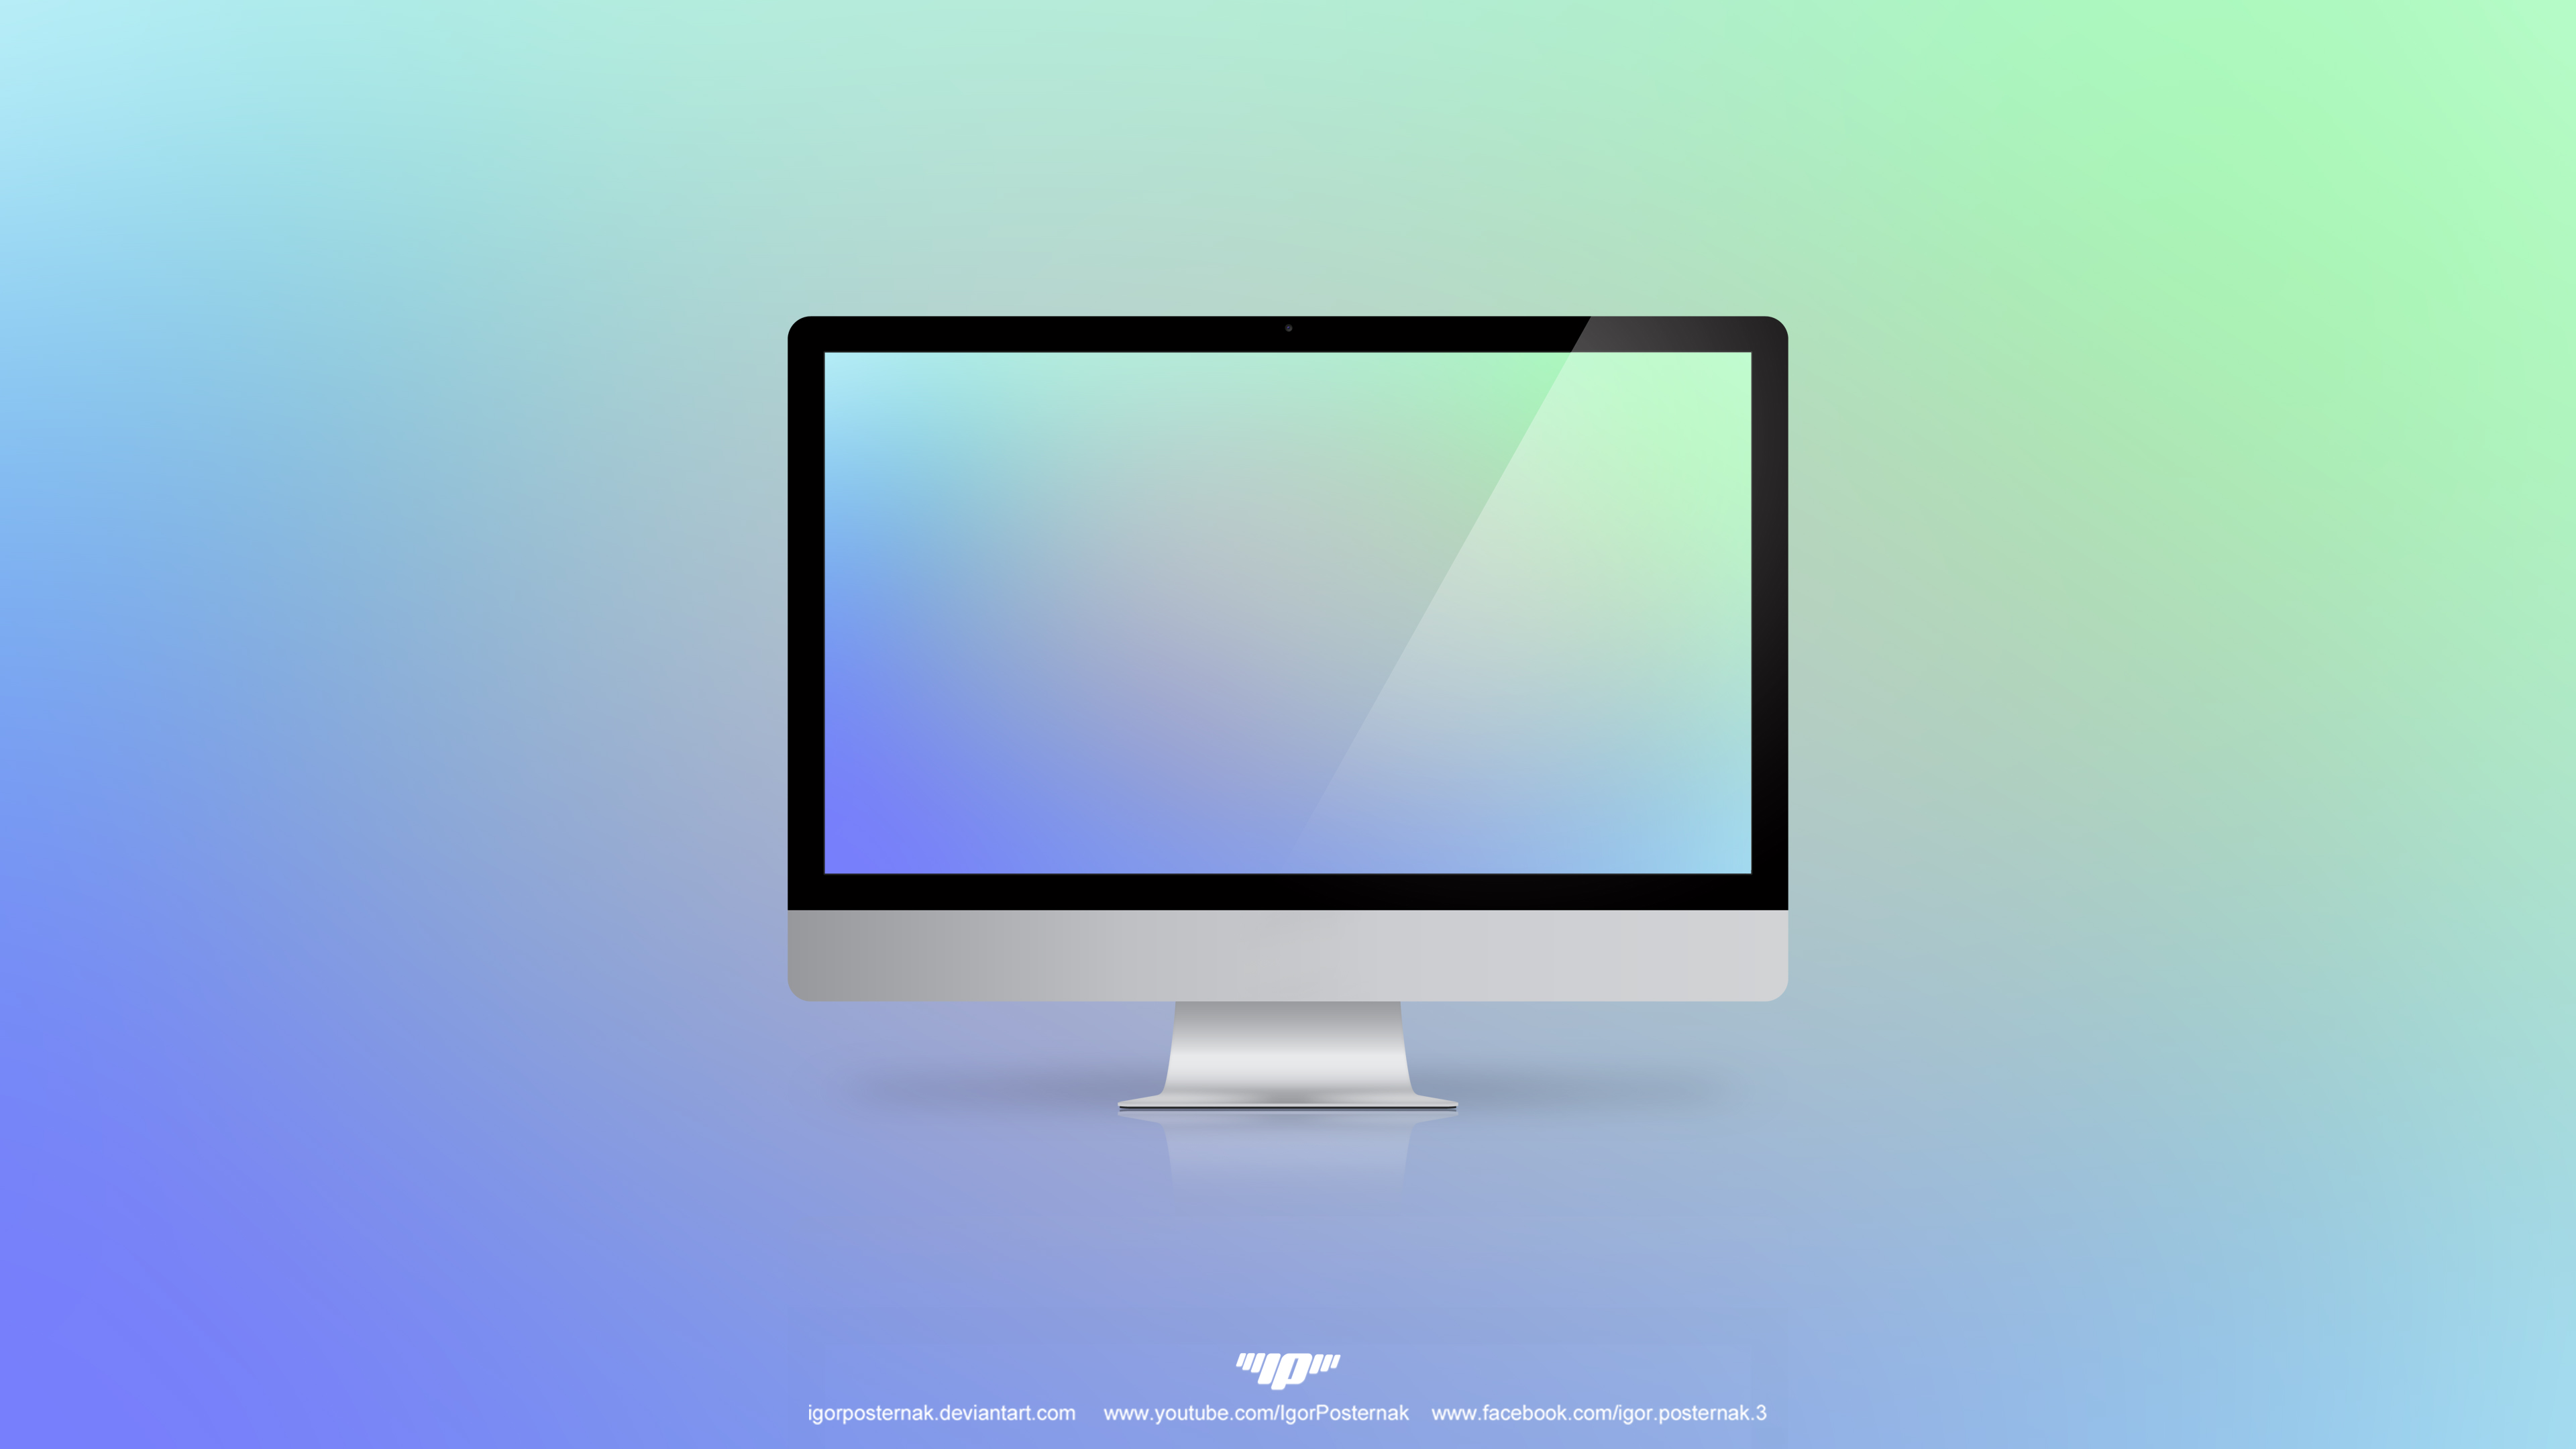 Wallpaper pack 1 by igorposternak on deviantart for Deviantart minimal wallpaper